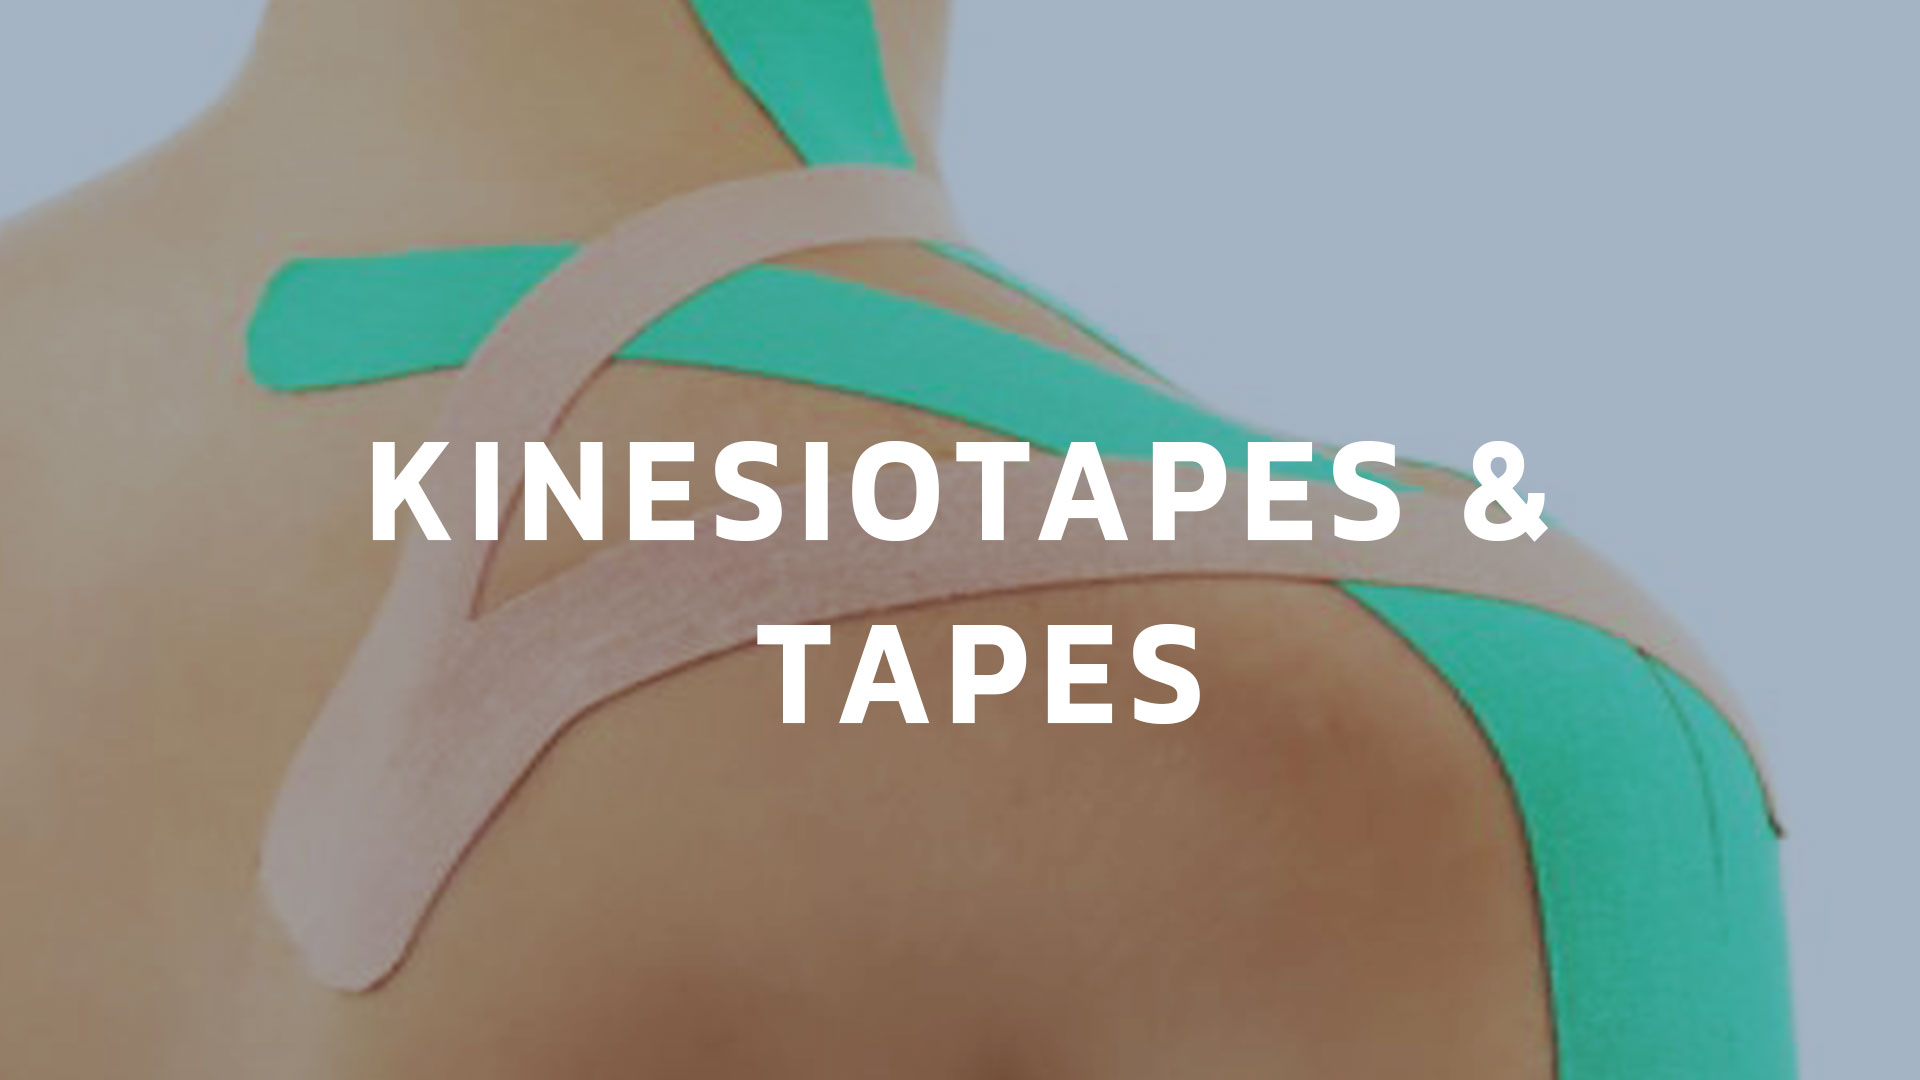 Kinesiotapes & Tapes